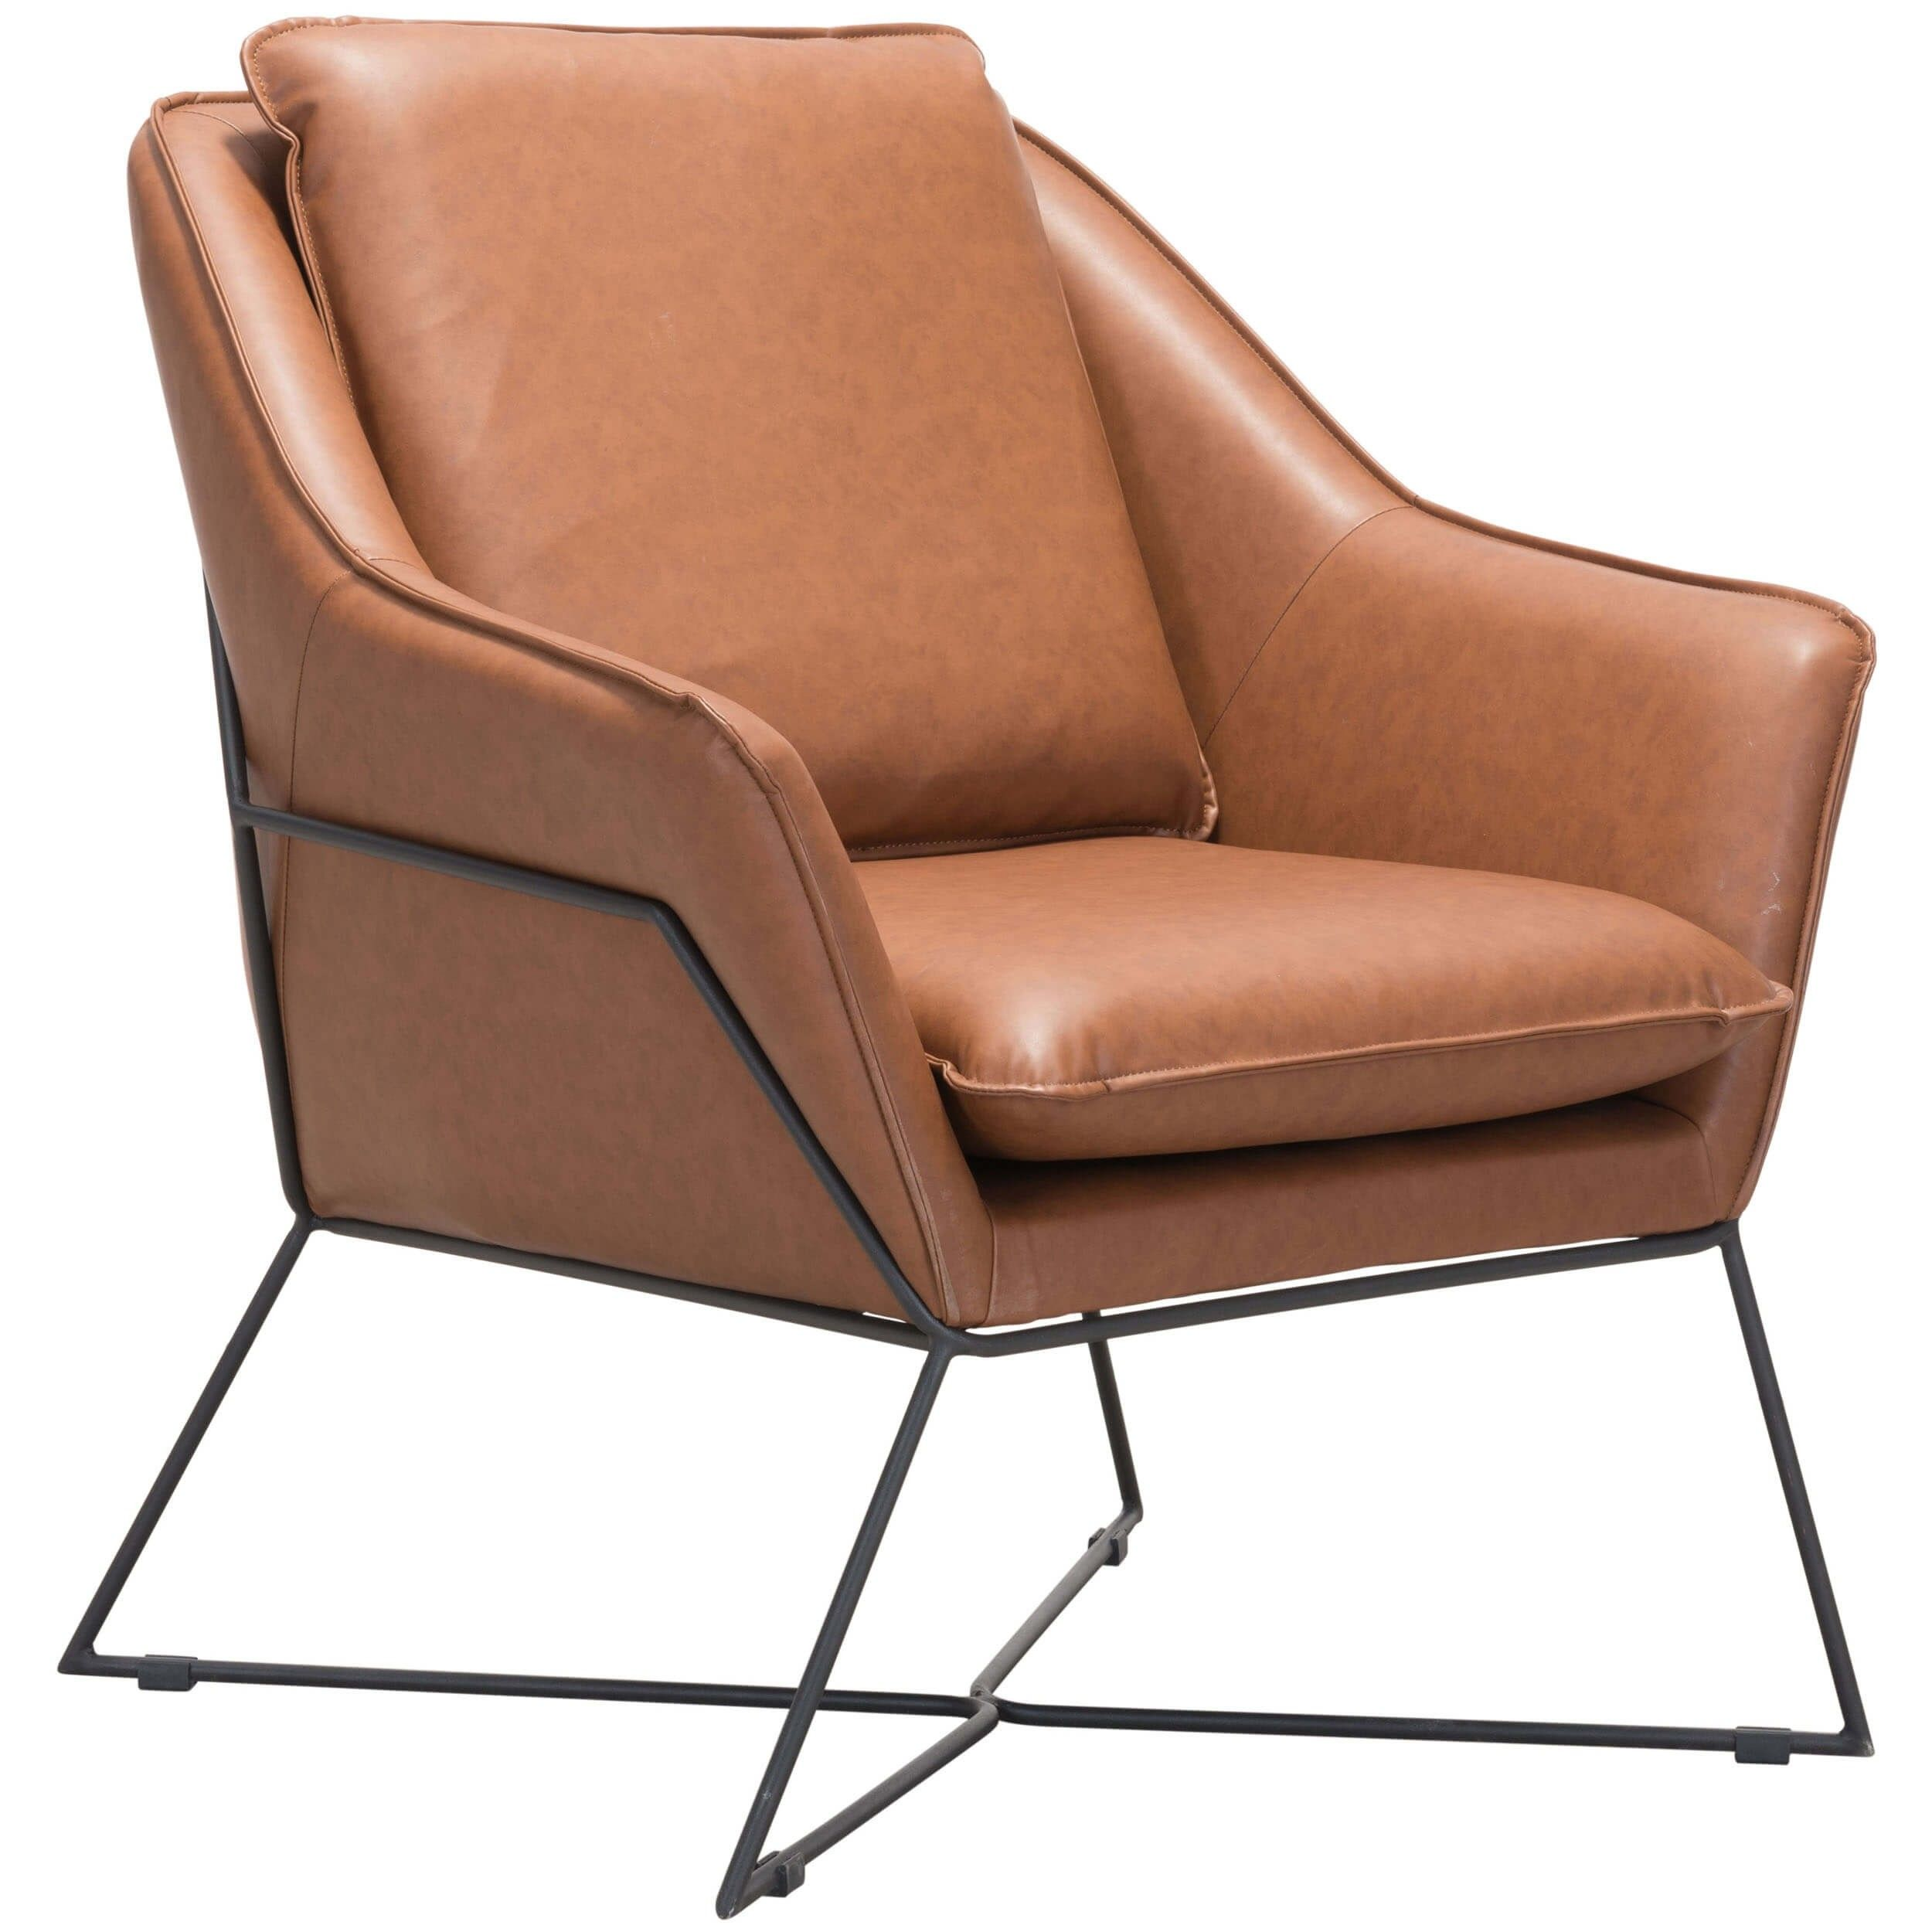 Lincoln Lounge Chair Saddle Zuo Modern Furniture